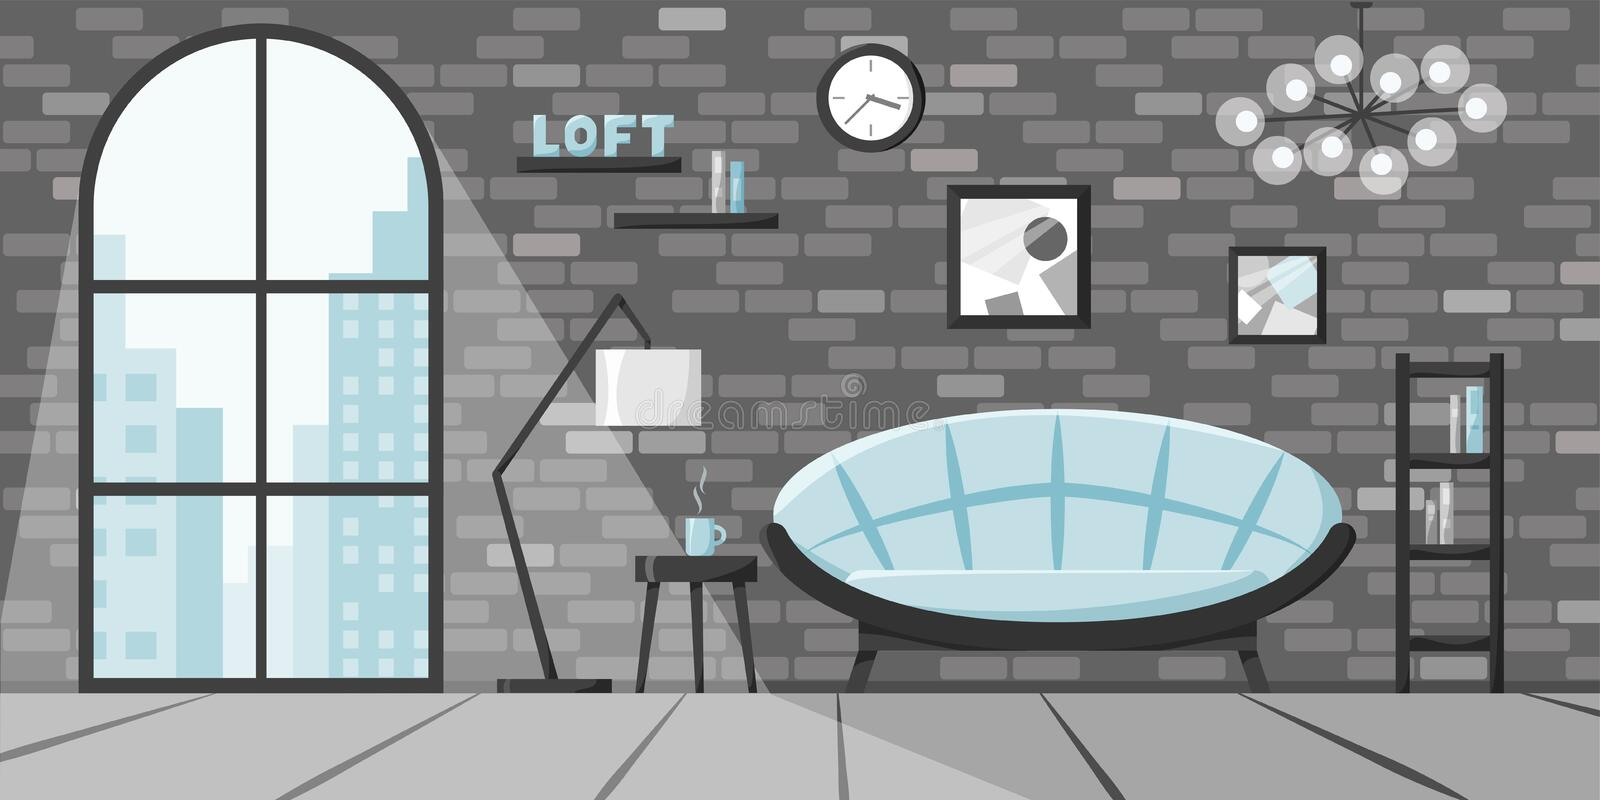 Modern living room in flat style, loft interior concept, apartment in city with big window and brick wall. Vector. Illustration of home with sofa, lamp, books vector illustration